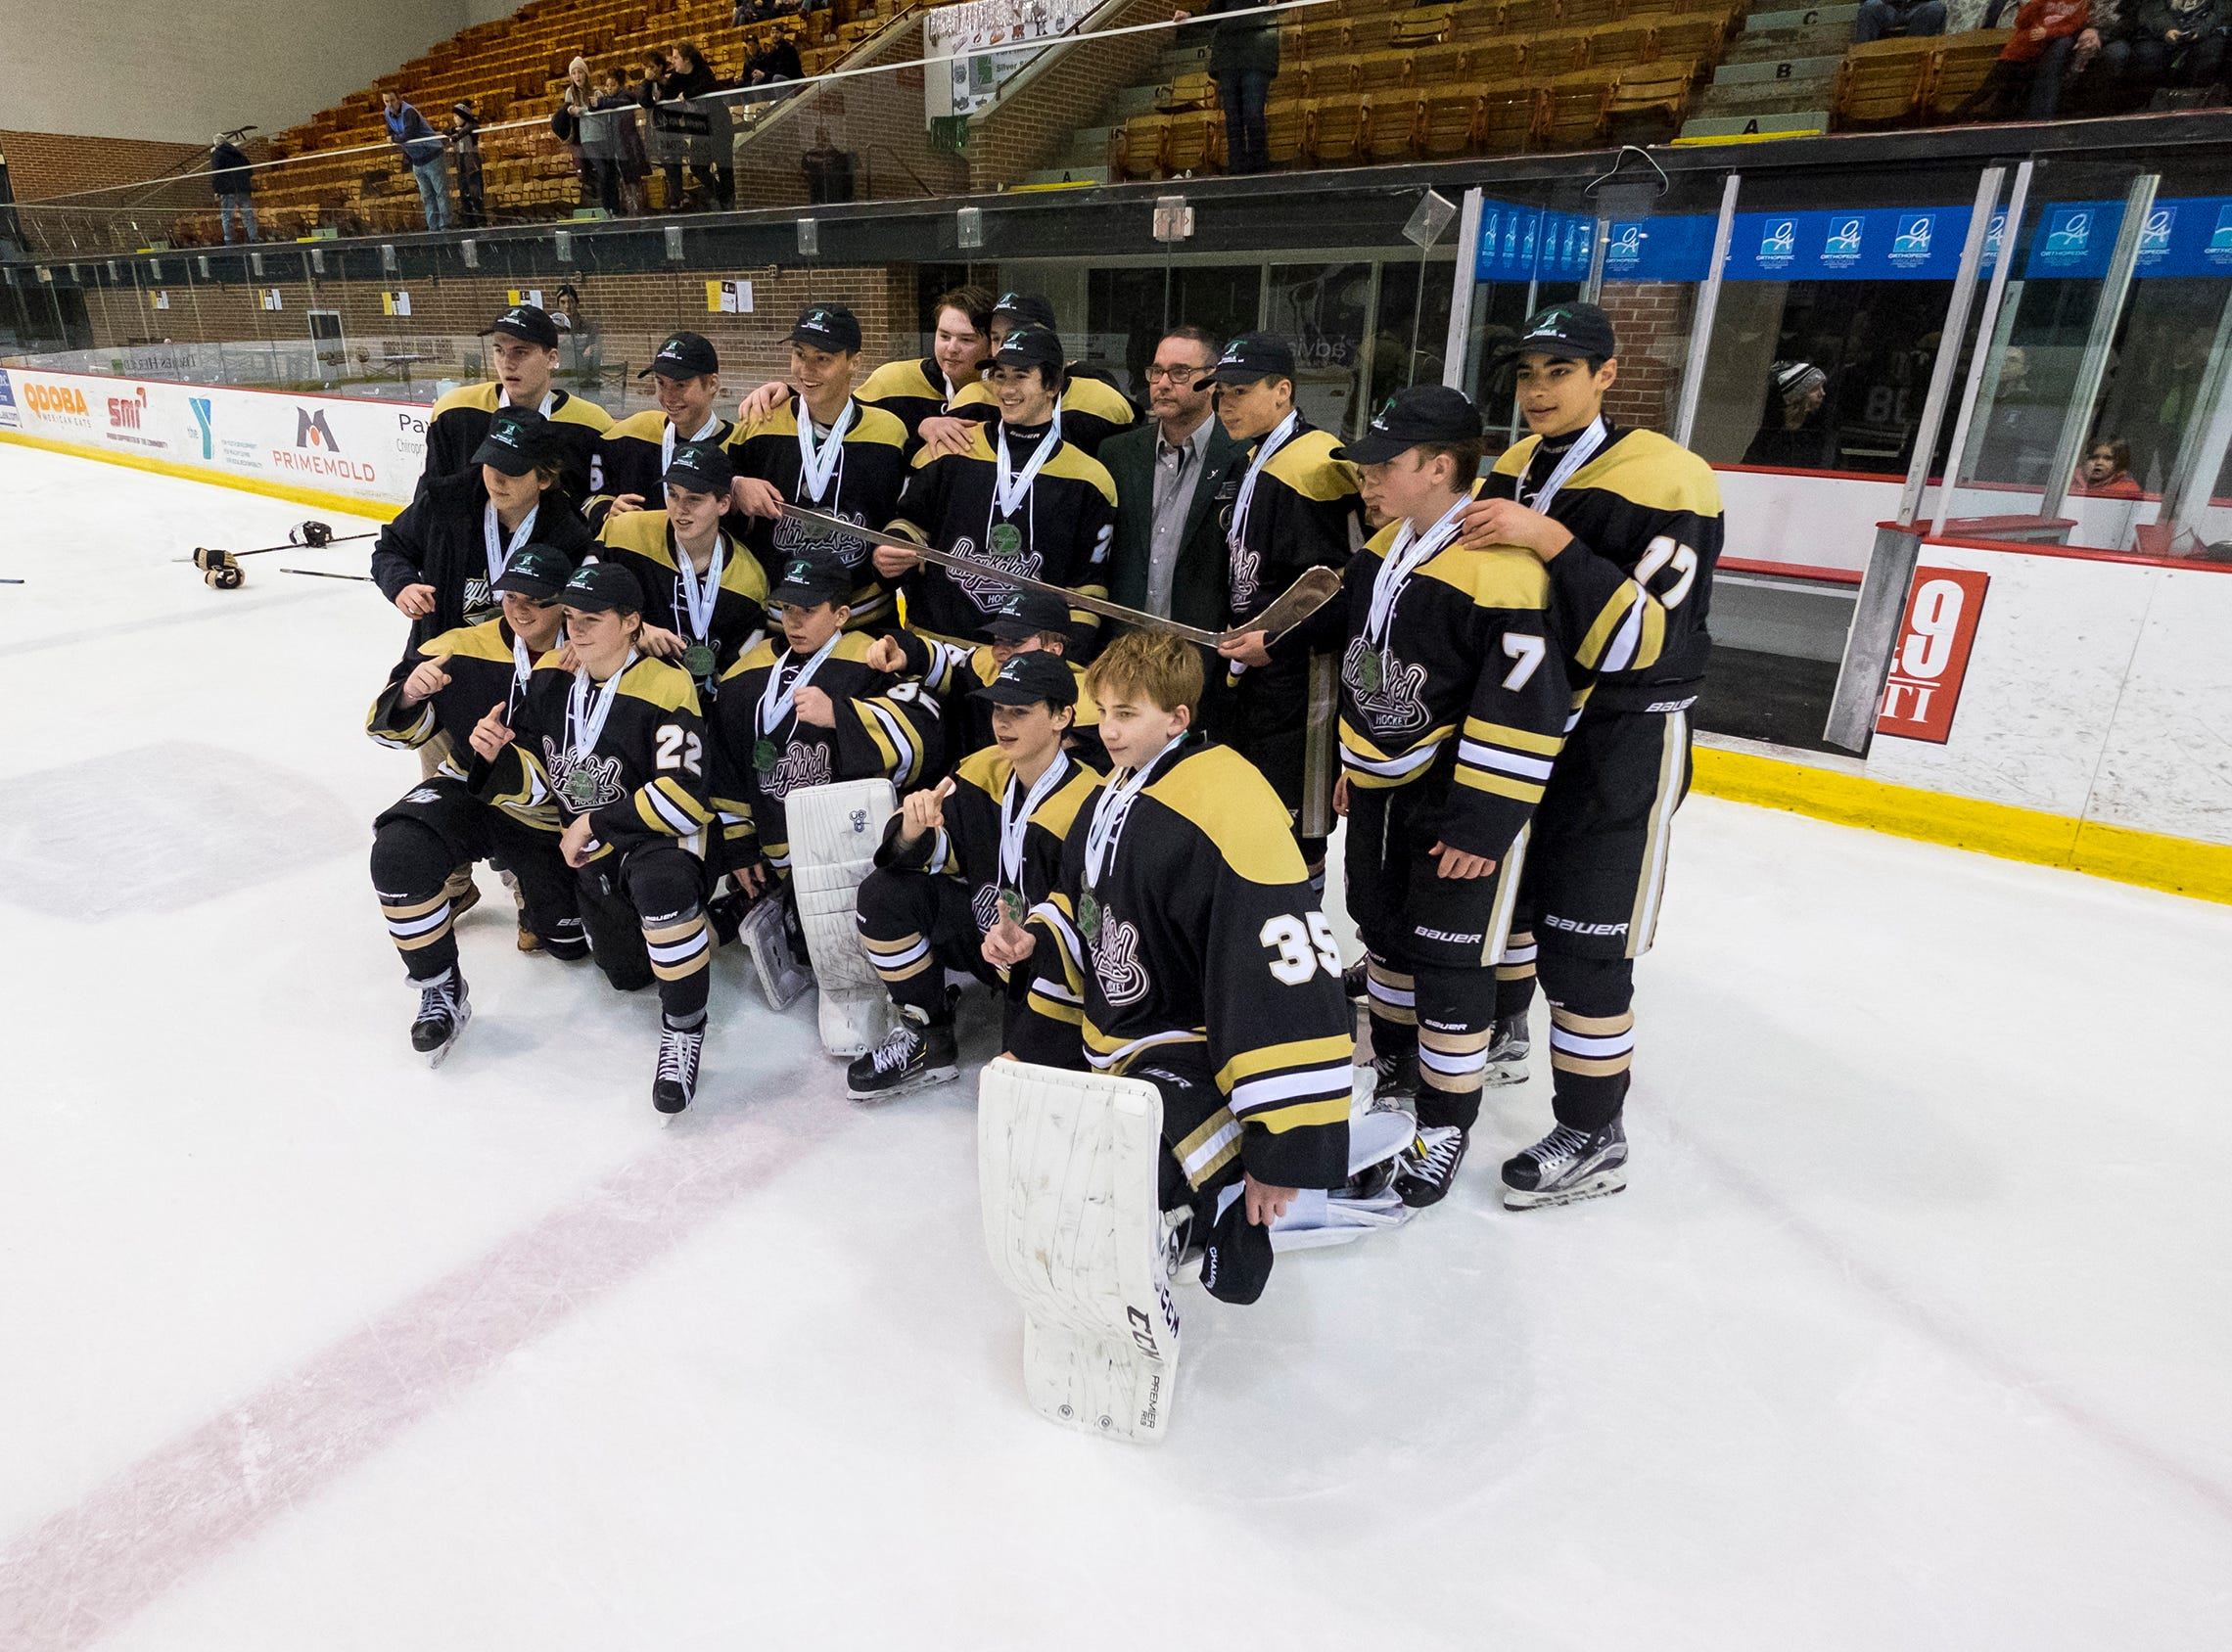 The Detroit Honeybaked celebrate their 8-2 victory over Buffalo Jr. Sabres after the Silver Stick Finals BAAA Championship match Sunday, Jan. 6, 2019 at McMorran Arena.